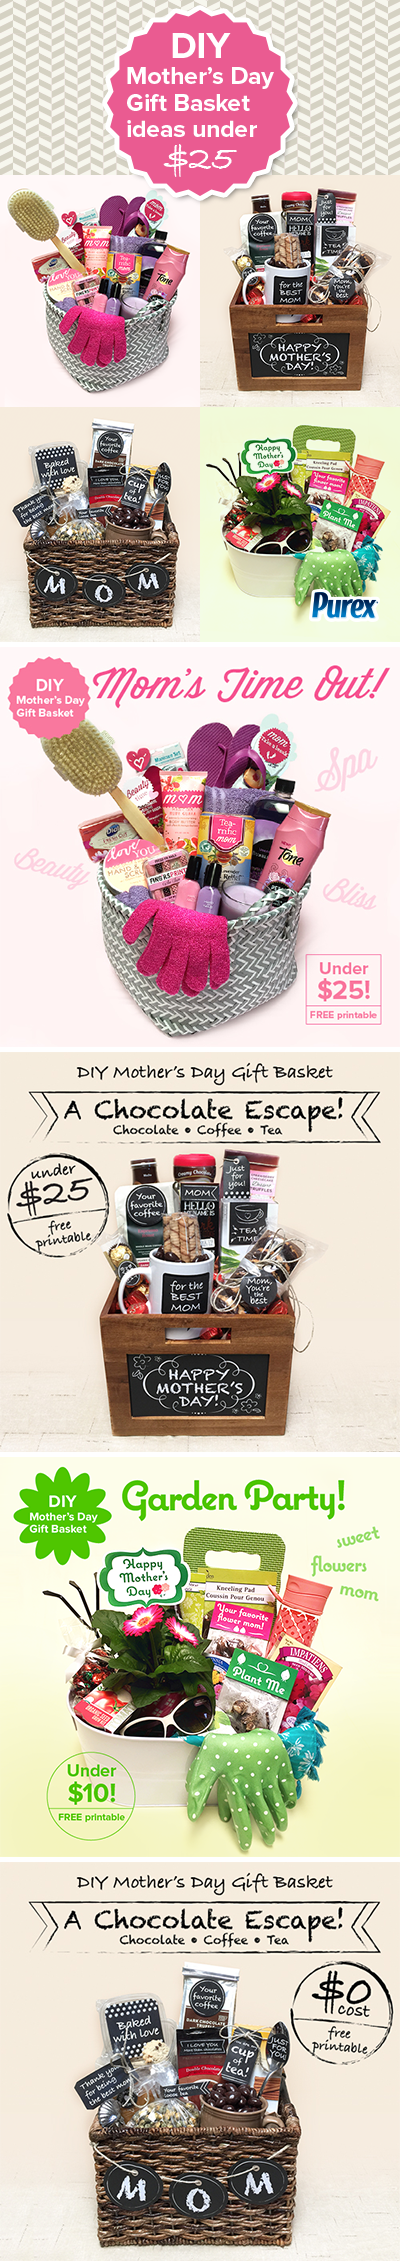 35 Best Diy Gift Baskets Perfect For Any Occasion Unique Clever Ideas Cheaps Deivery